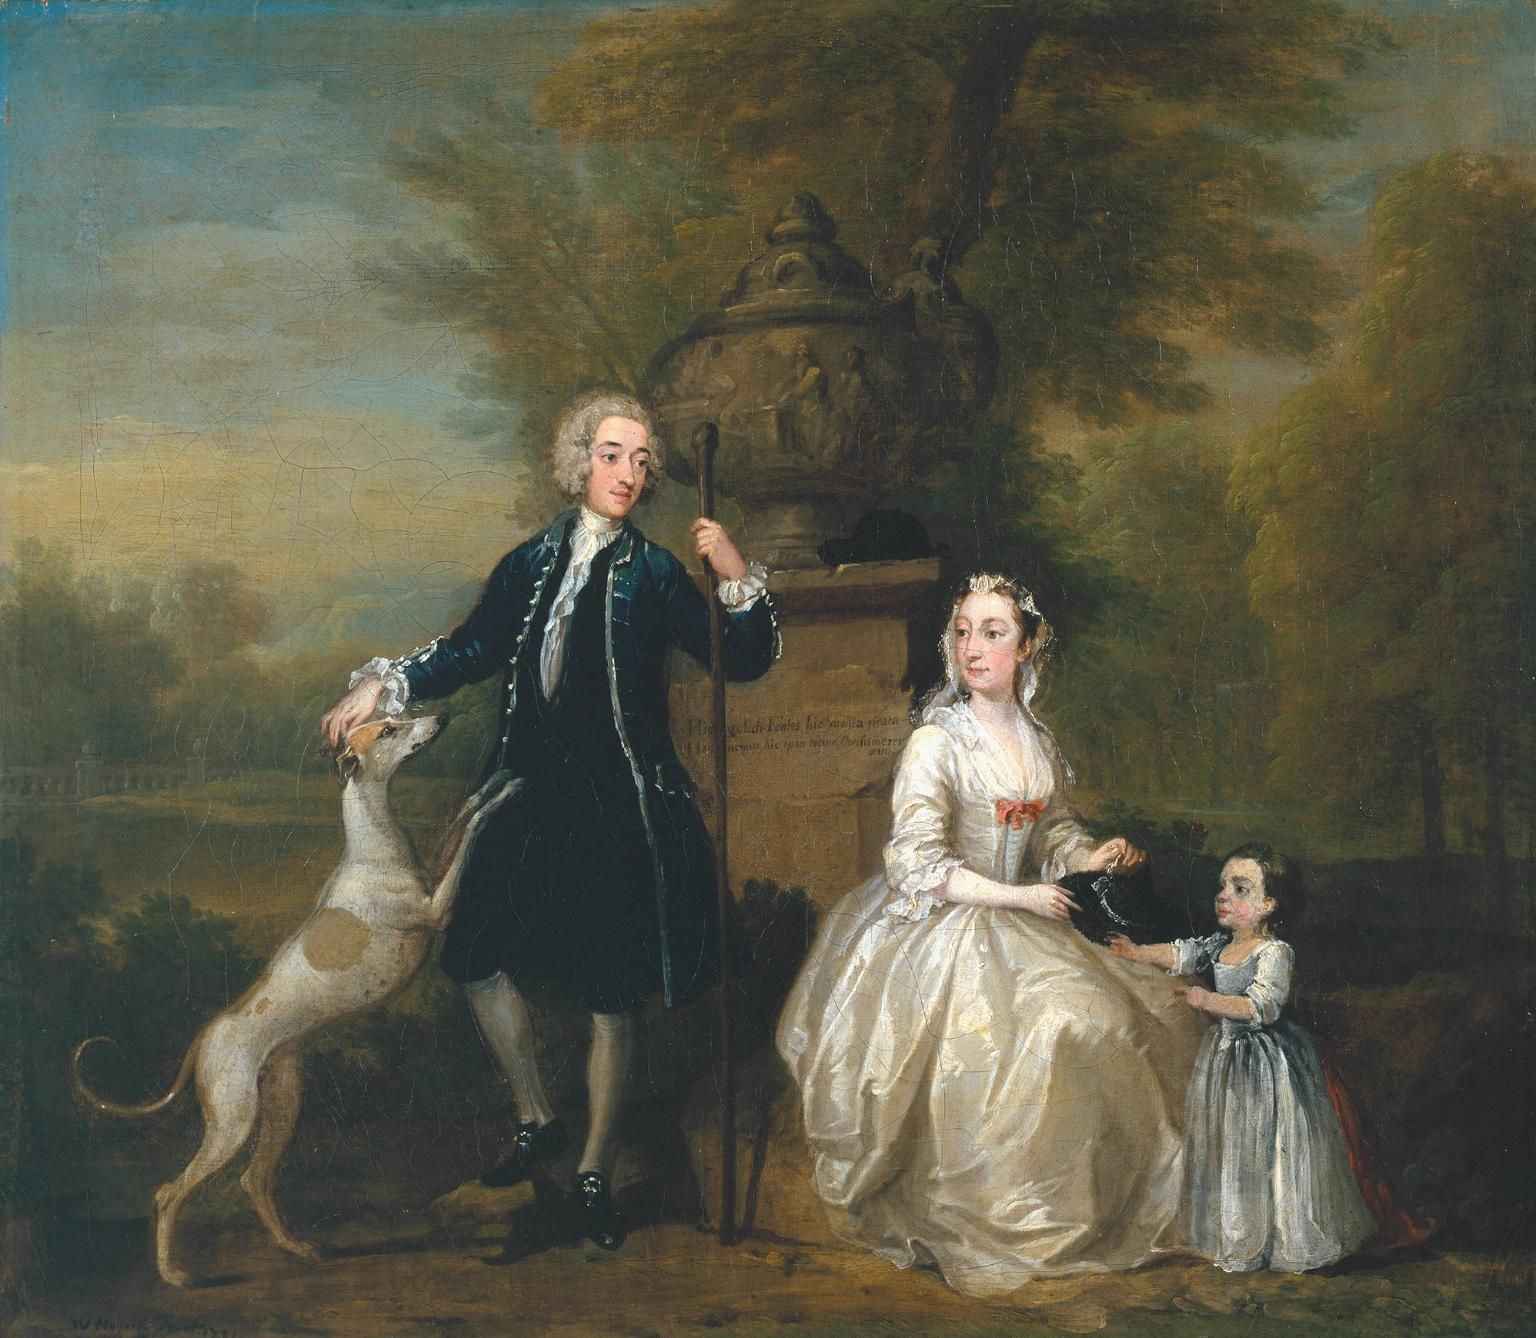 William hogarth ashley cowper with his wife and daughter for William hogarth was noted for painting